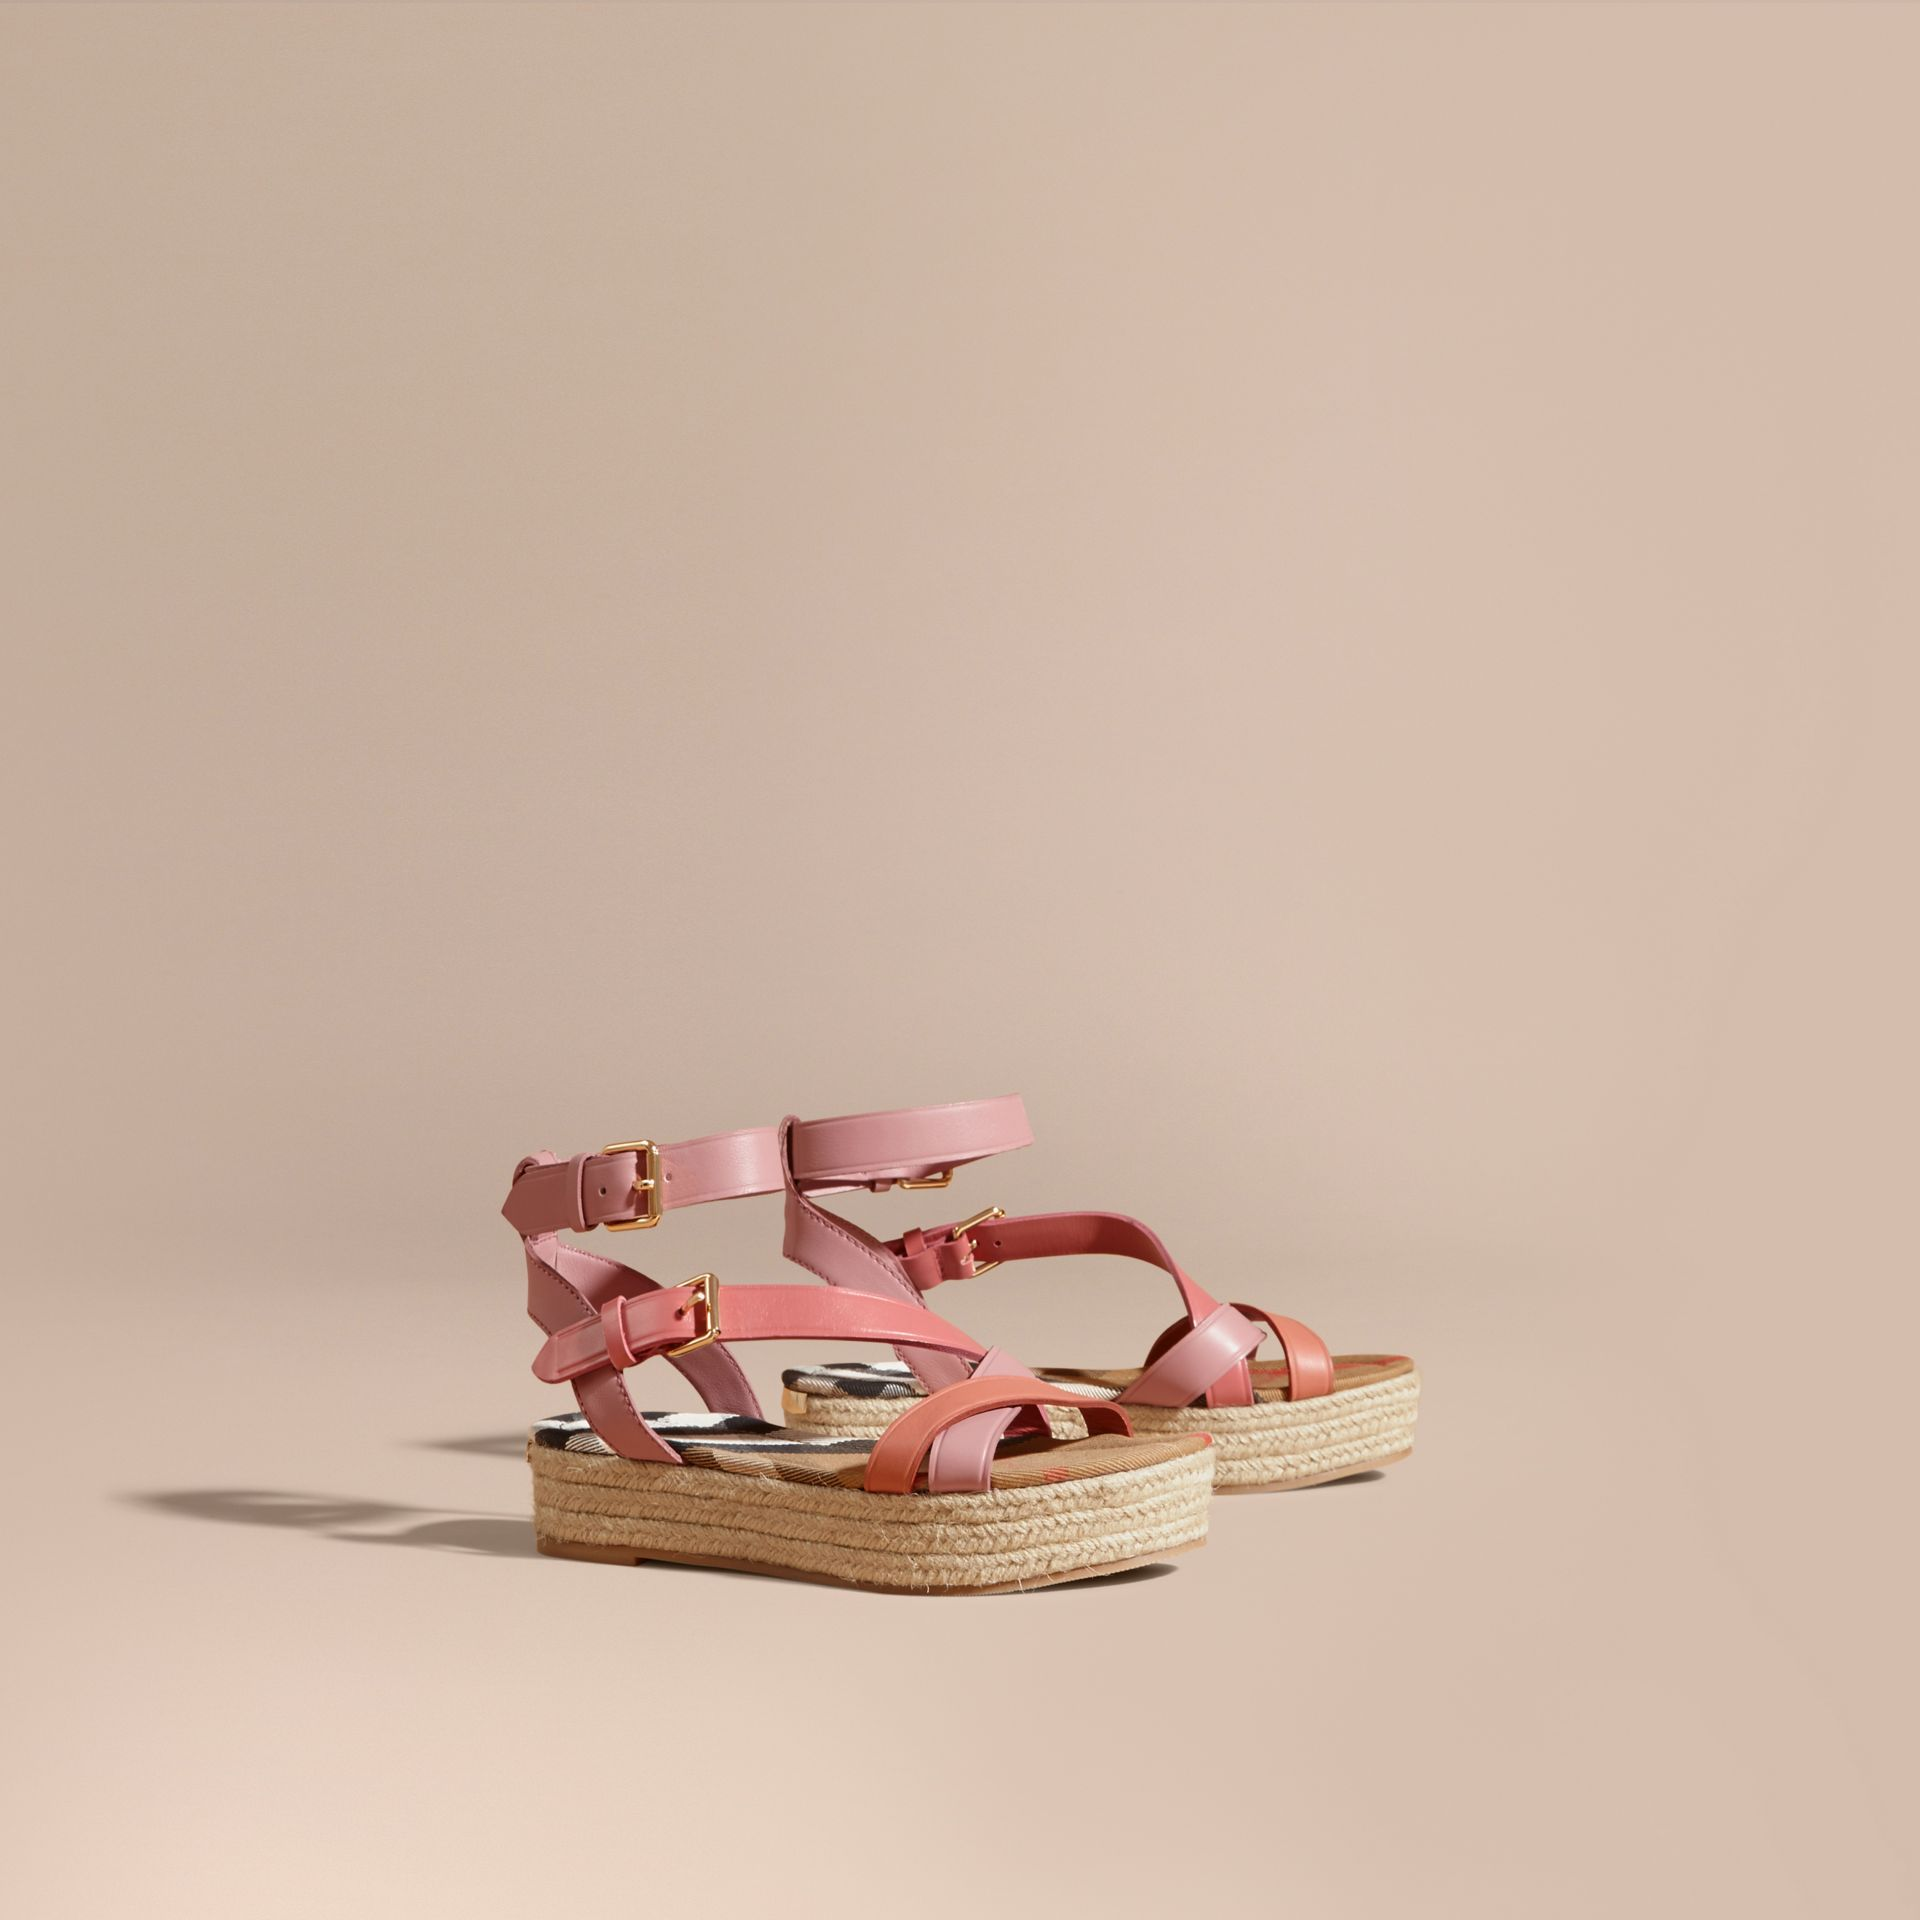 Two-tone Leather Espadrille Sandals in Dusty Pink - Women | Burberry Australia - gallery image 1